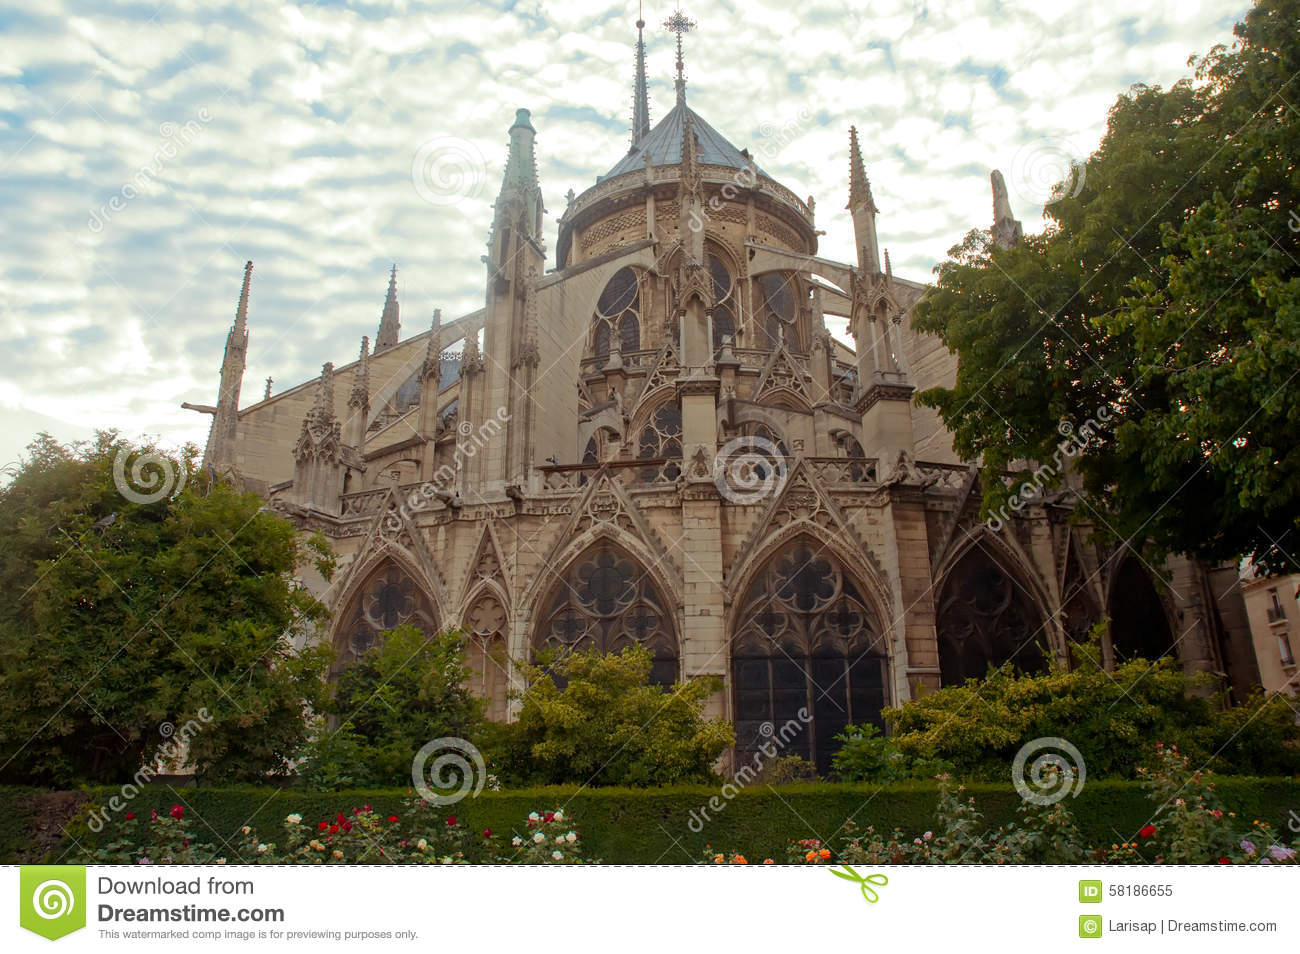 notre dame cathedral architectural details paris stock image image of boats european. Black Bedroom Furniture Sets. Home Design Ideas